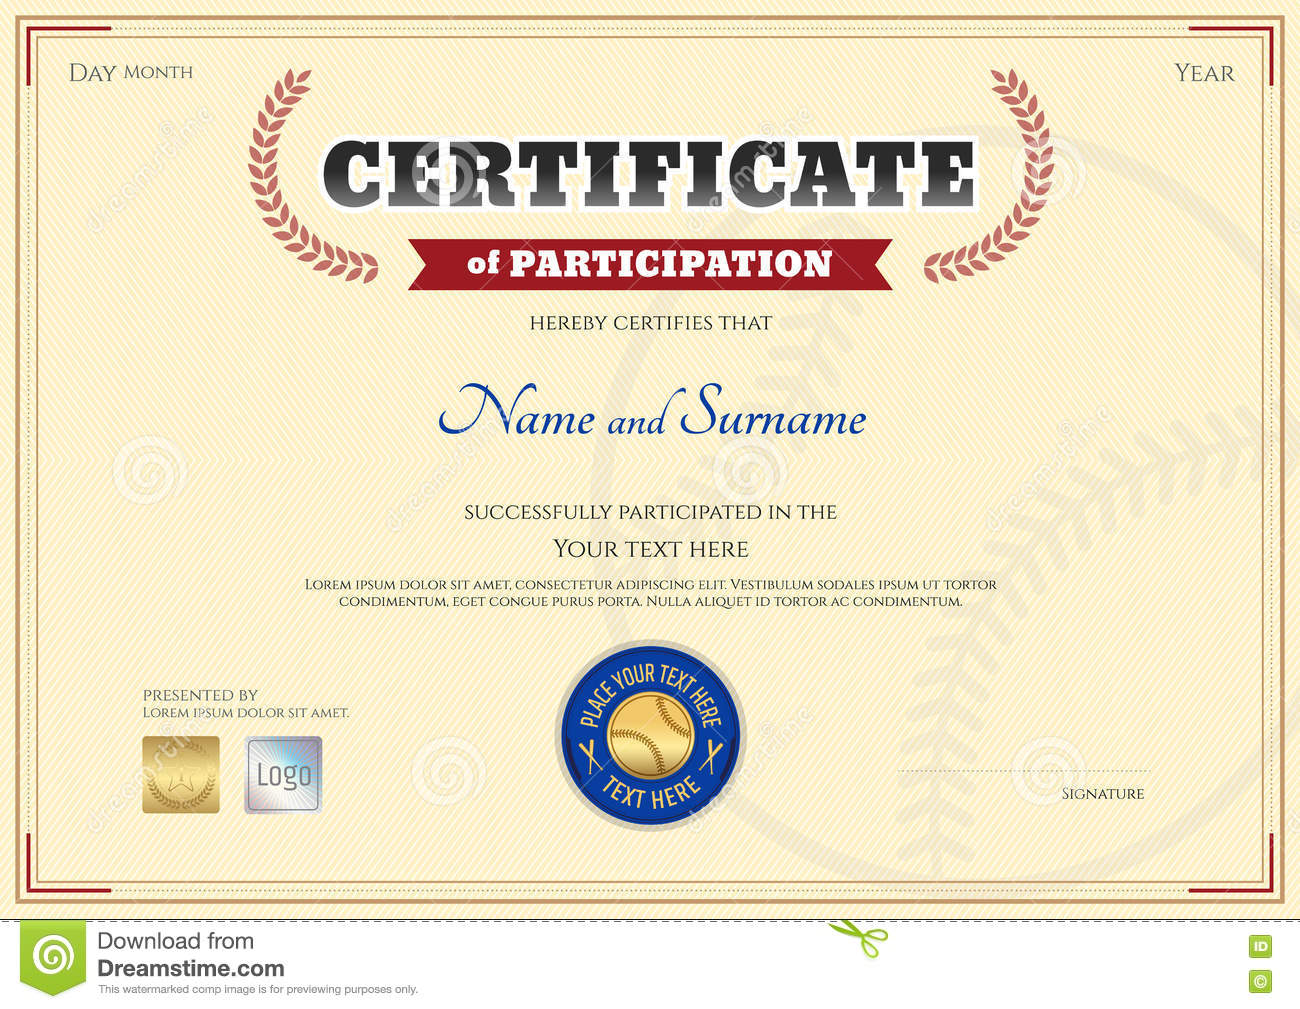 Certificate of participation template in baseball sport theme certificate of participation template in baseball sport theme toneelgroepblik